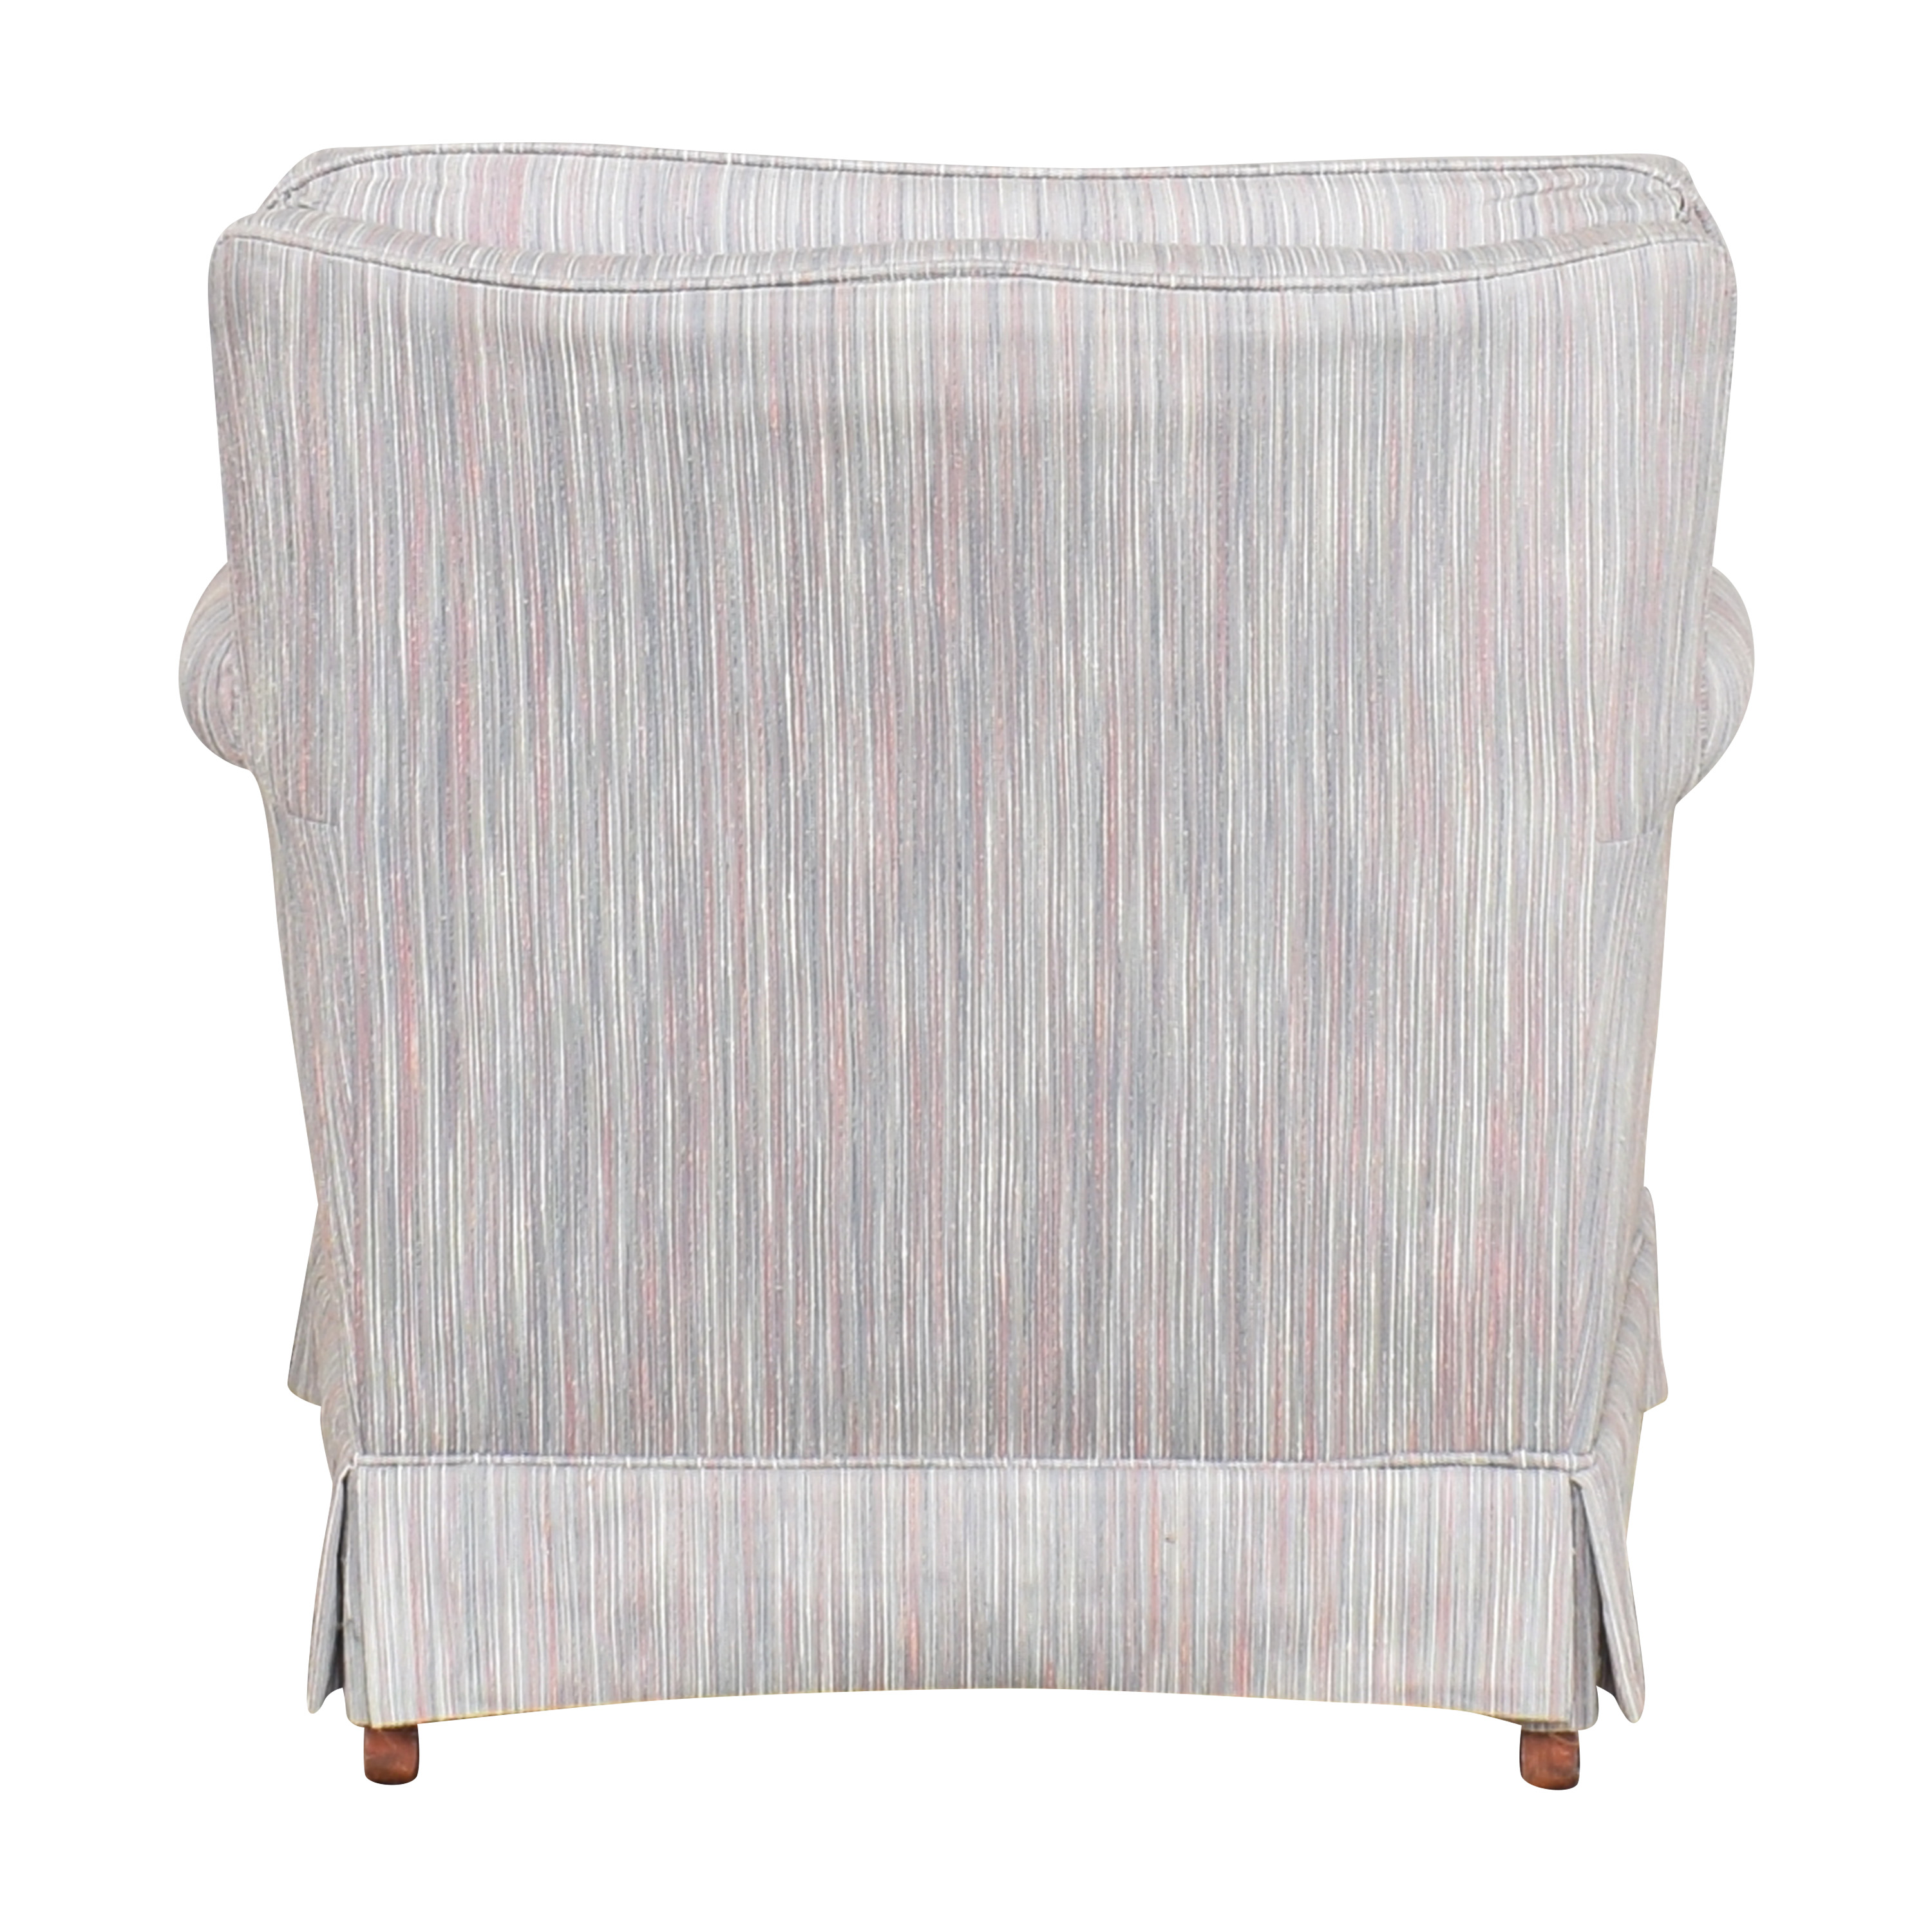 Hickory-Fry Hickory-Fry Tufted Accent Chair nj